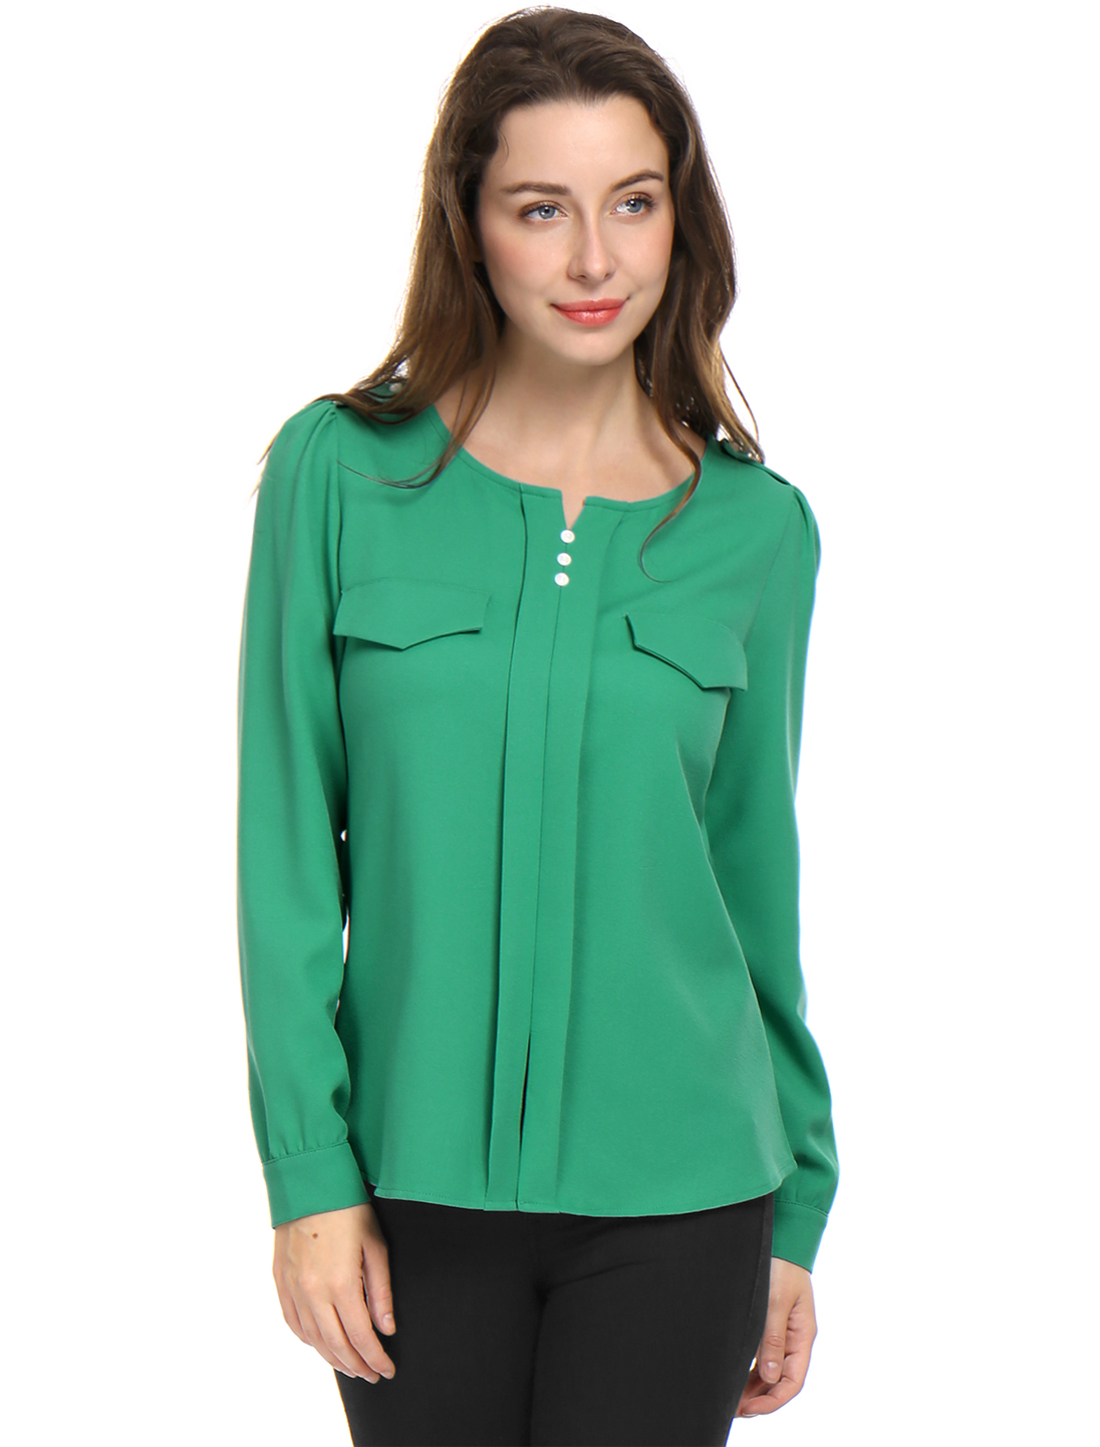 Women Long Sleeve Ruched Detail Fake Pockets Shirt Green S